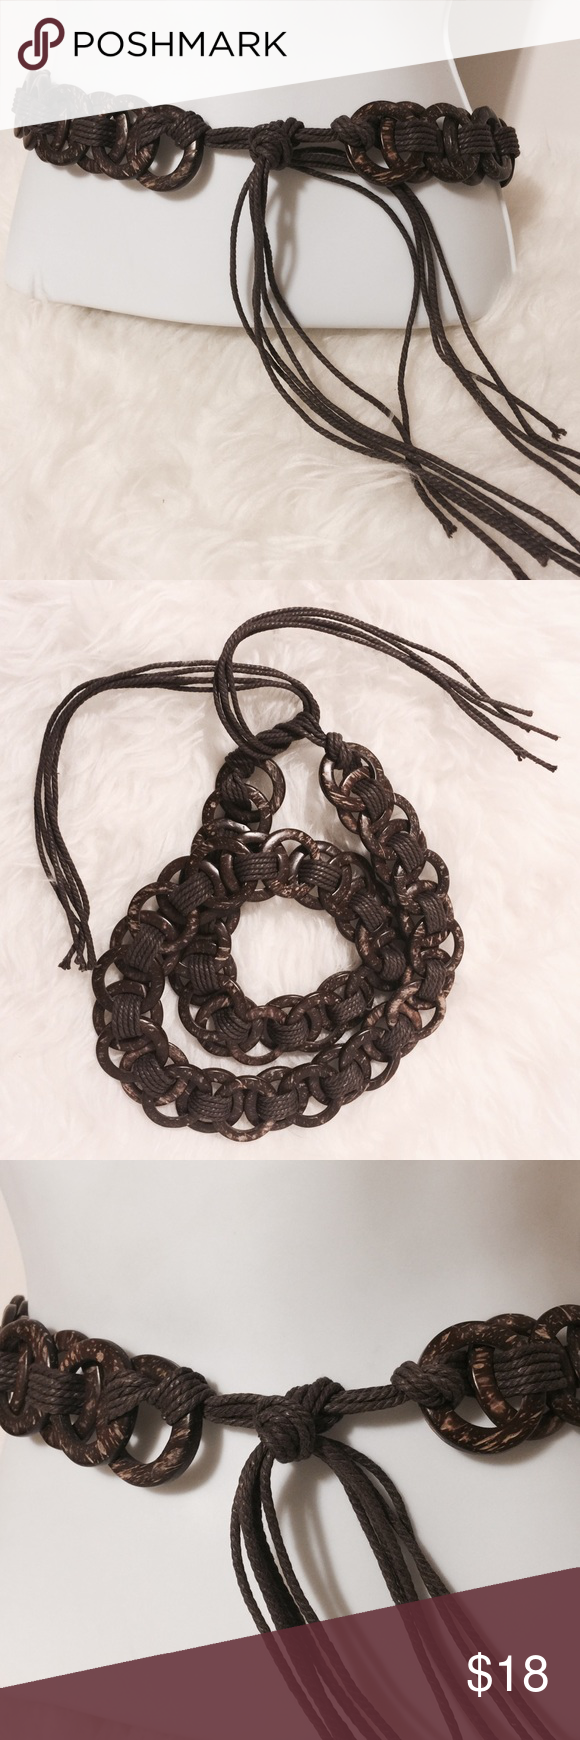 """✨ Brown Wooden Circle Tye Belt The perfect belt! Reversible brown/chocolate interlocking circles woven with brown strands. 1 1/2"""" wide. 60"""" total length Accessories Belts"""